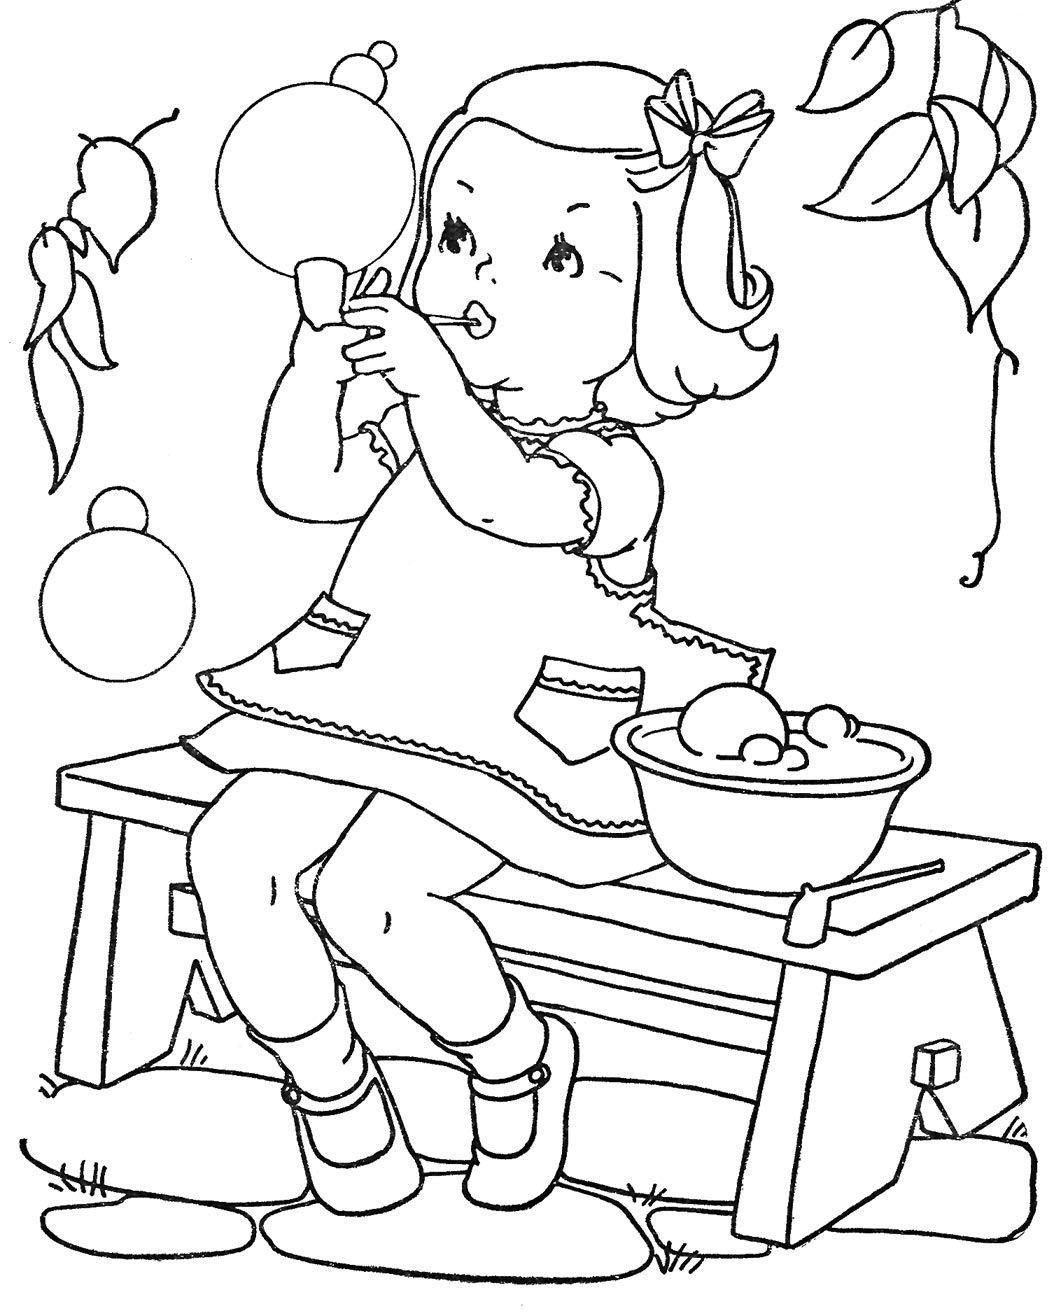 20 vintage coloring book images free to print maybe use for